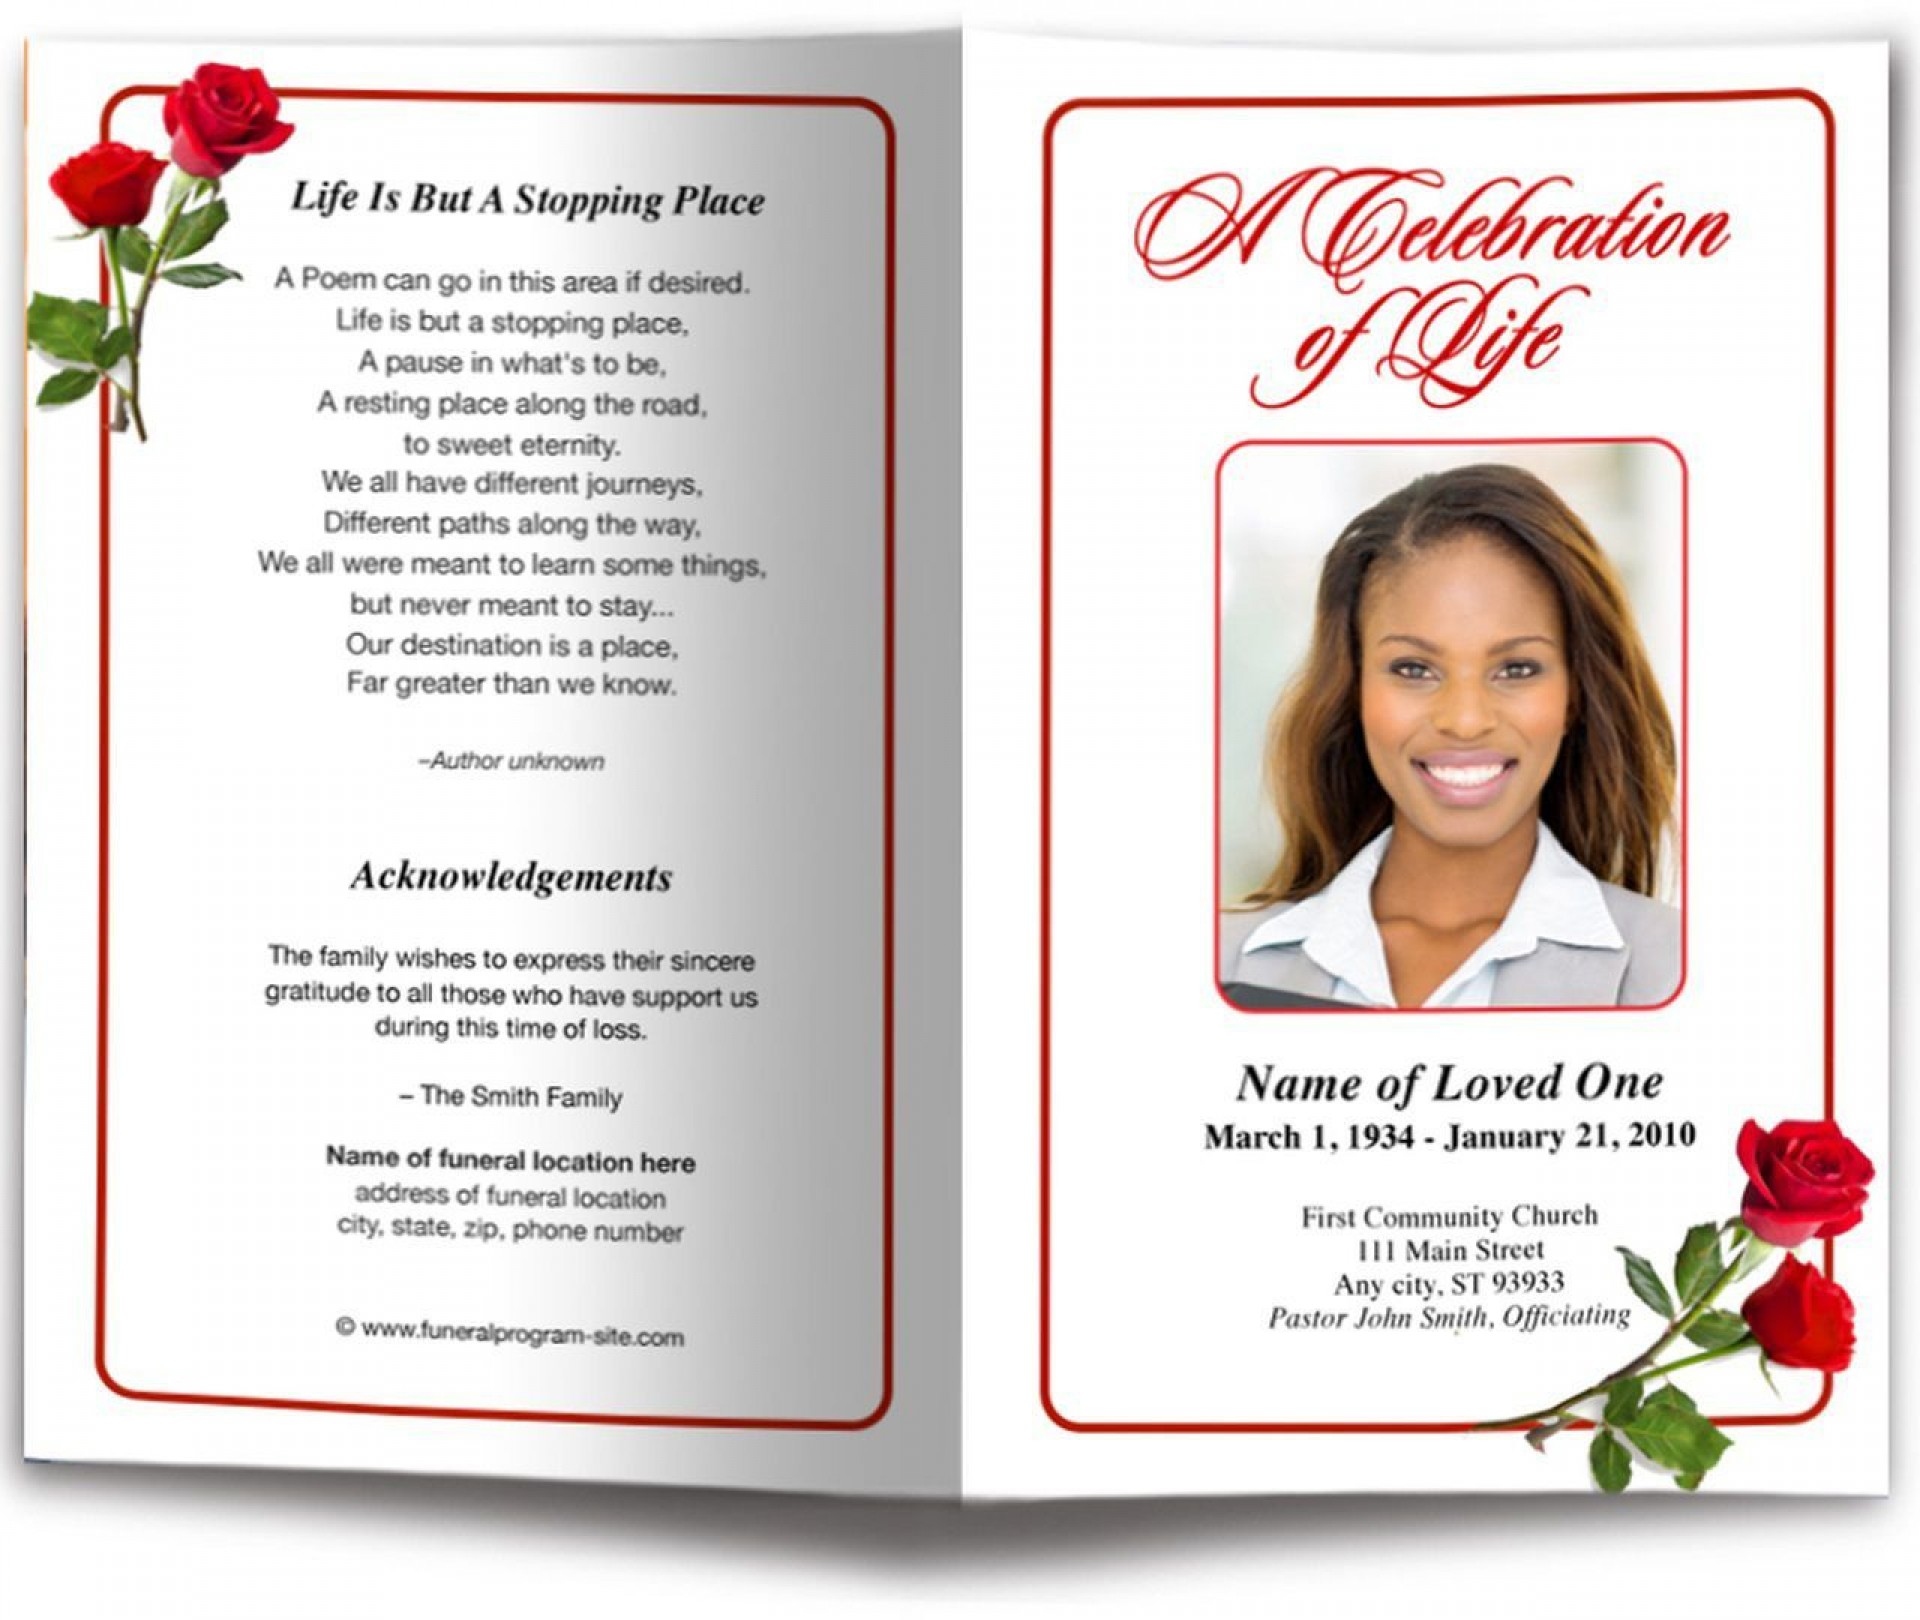 002 Top Free Funeral Pamphlet Template High Resolution  Word Simple Program Download Psd1920